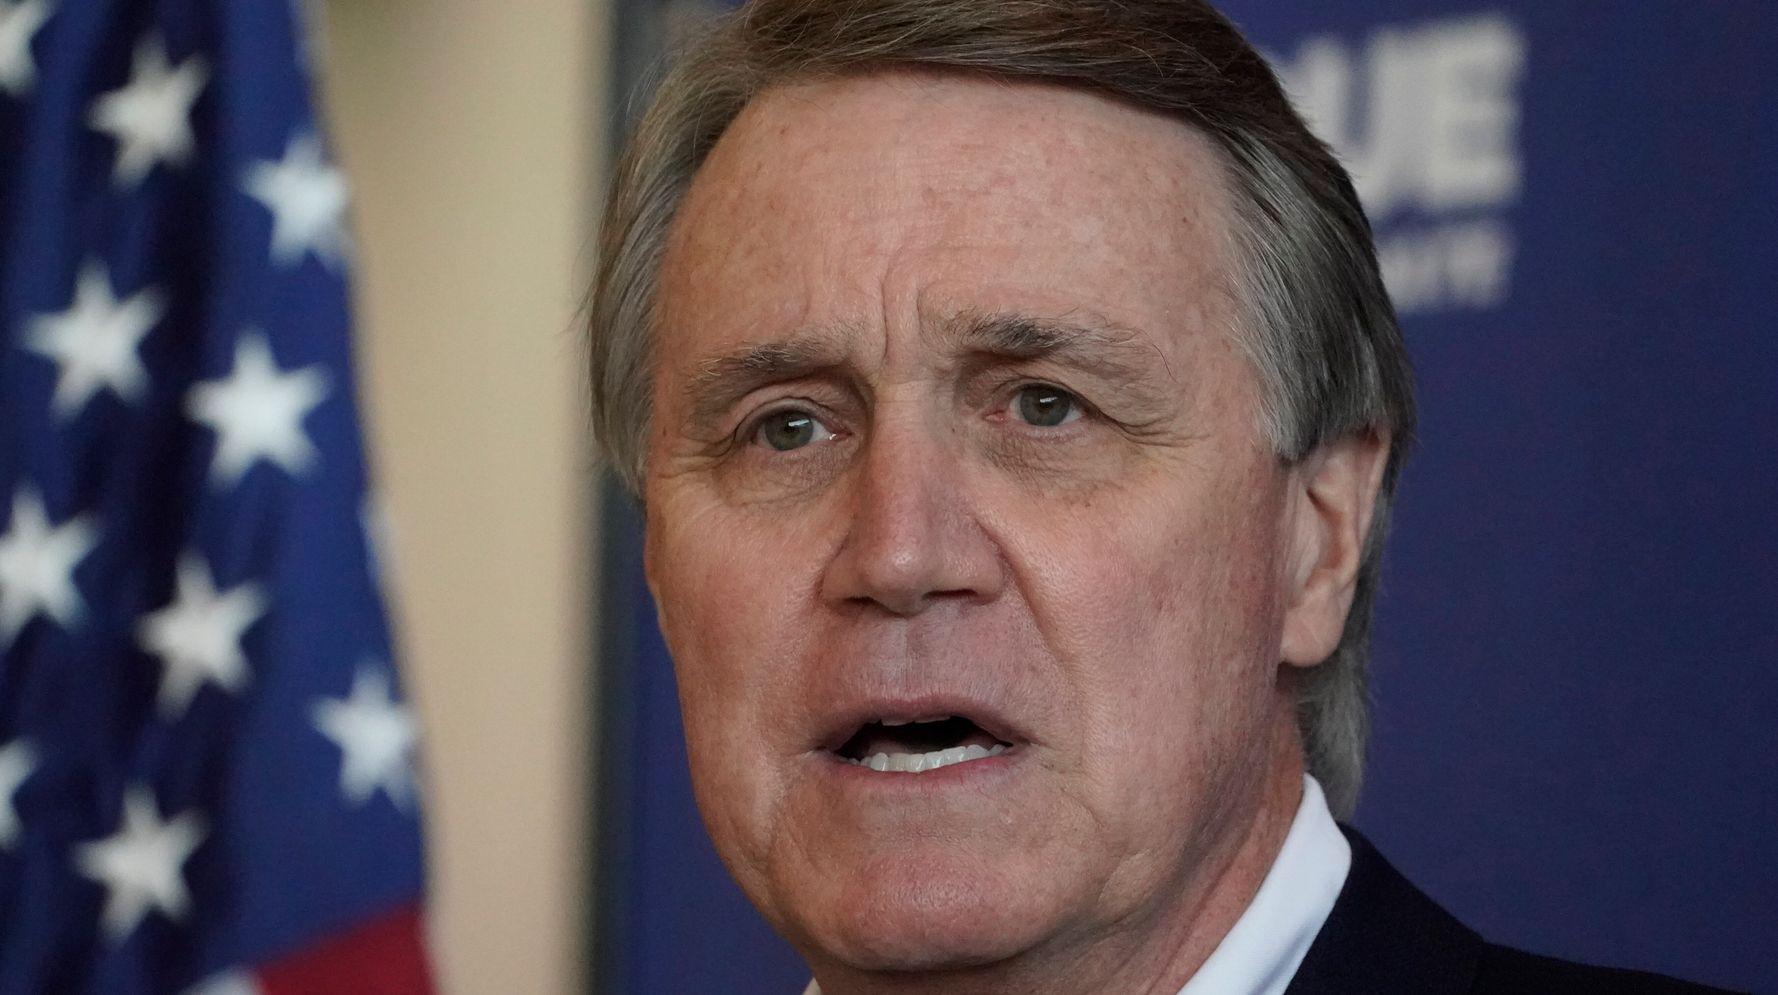 Ga. Sen. Perdue Boosts Wealth With Well-Timed Stock Trades